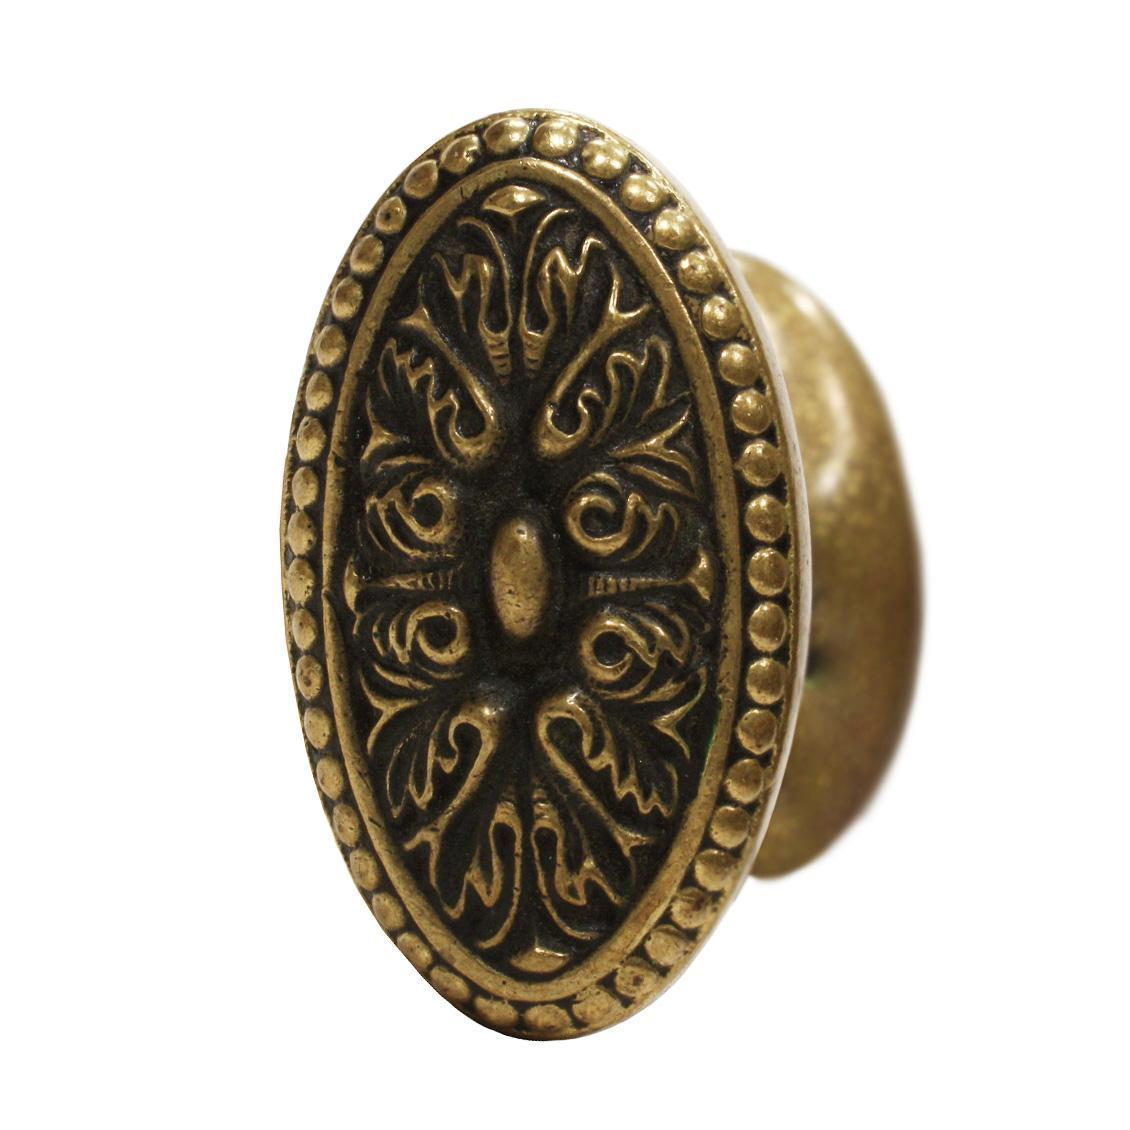 "Antique Cast Bronze ""Isigny"" Door Knob Set by Yale & Towne, c.1910"